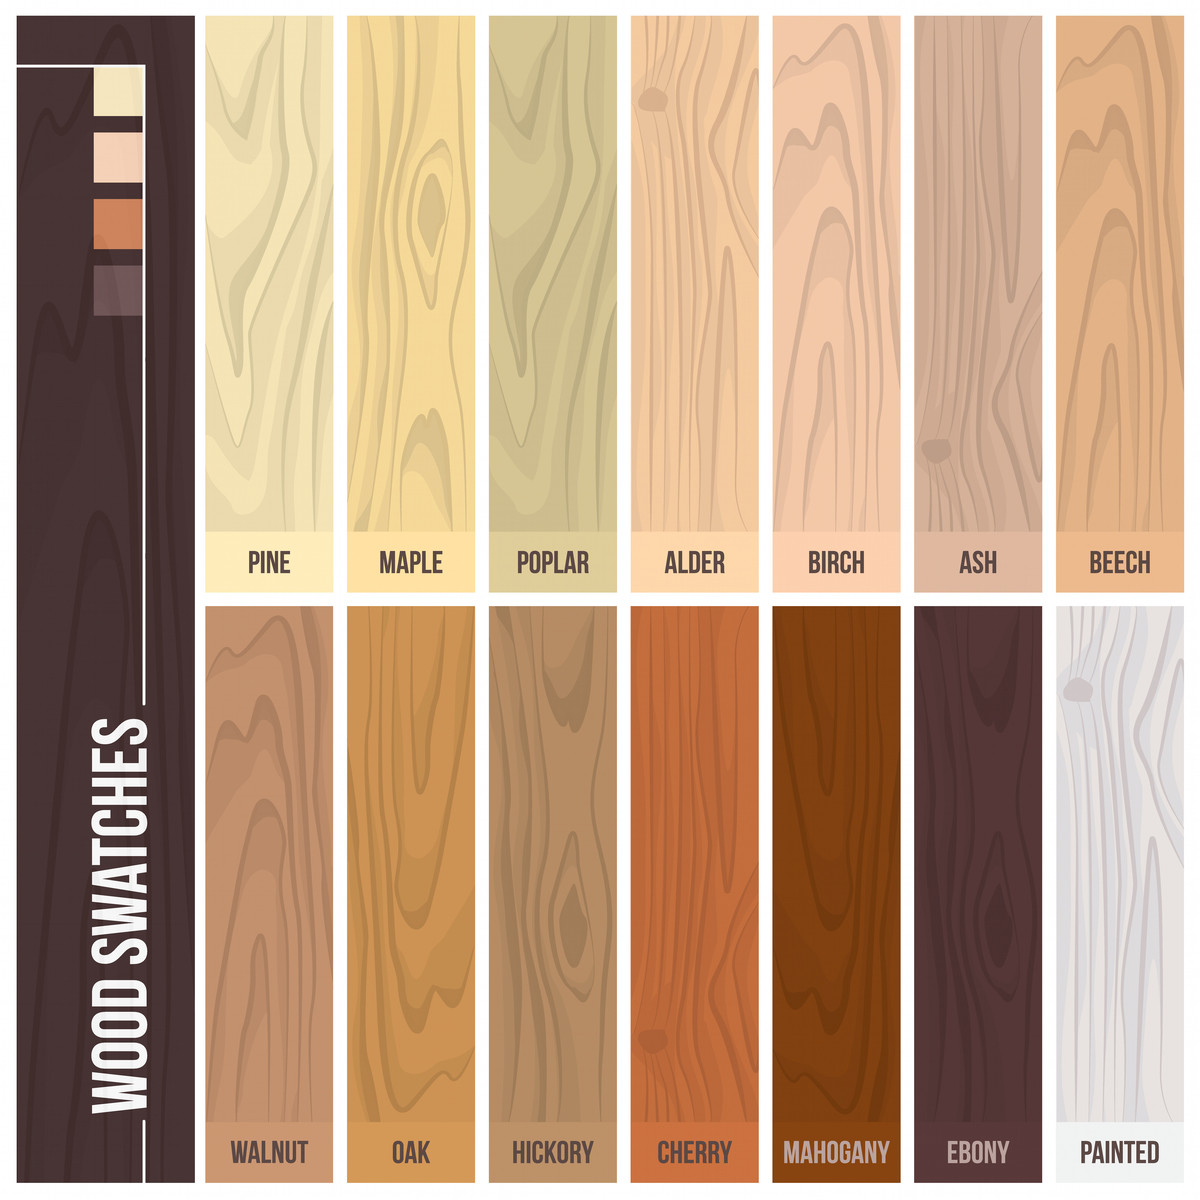 Janka Rating for Hardwood Floors Of 12 Types Of Hardwood Flooring Species Styles Edging Dimensions Inside Types Of Hardwood Flooring Illustrated Guide